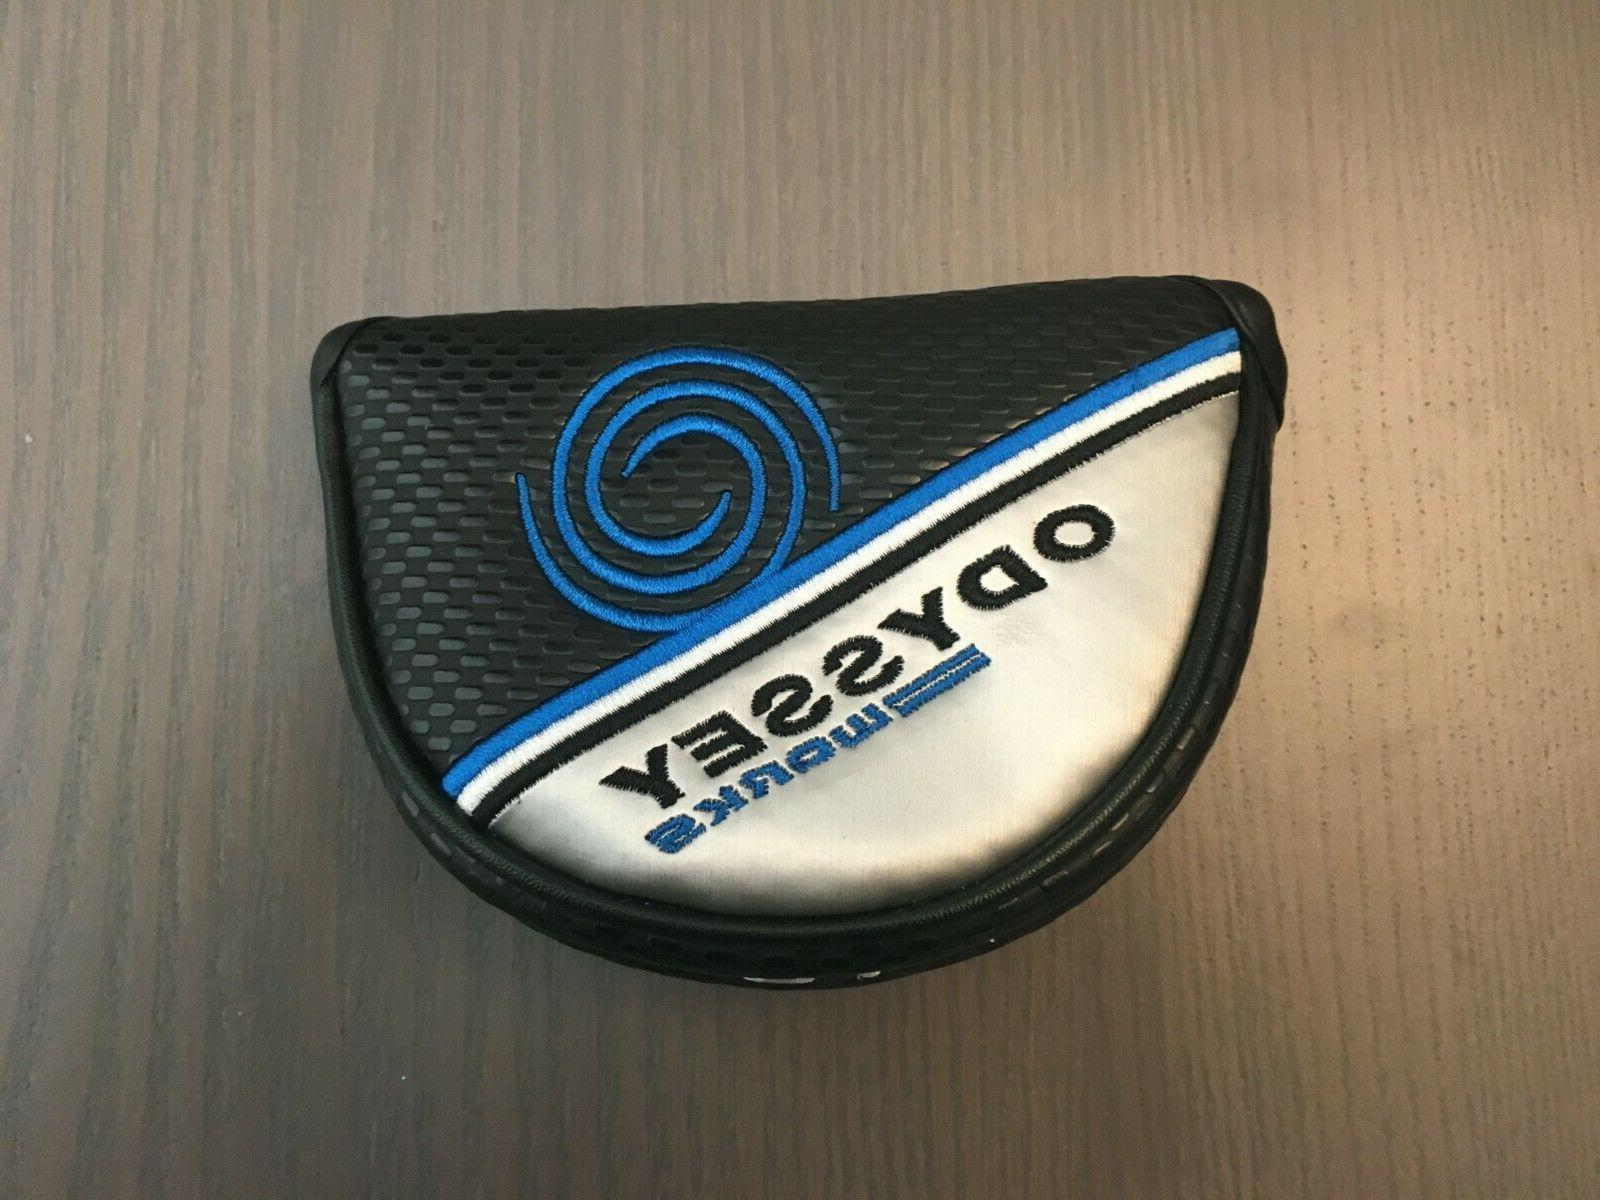 ODYSSEY HEADCOVER #9 White Hot RX NEW